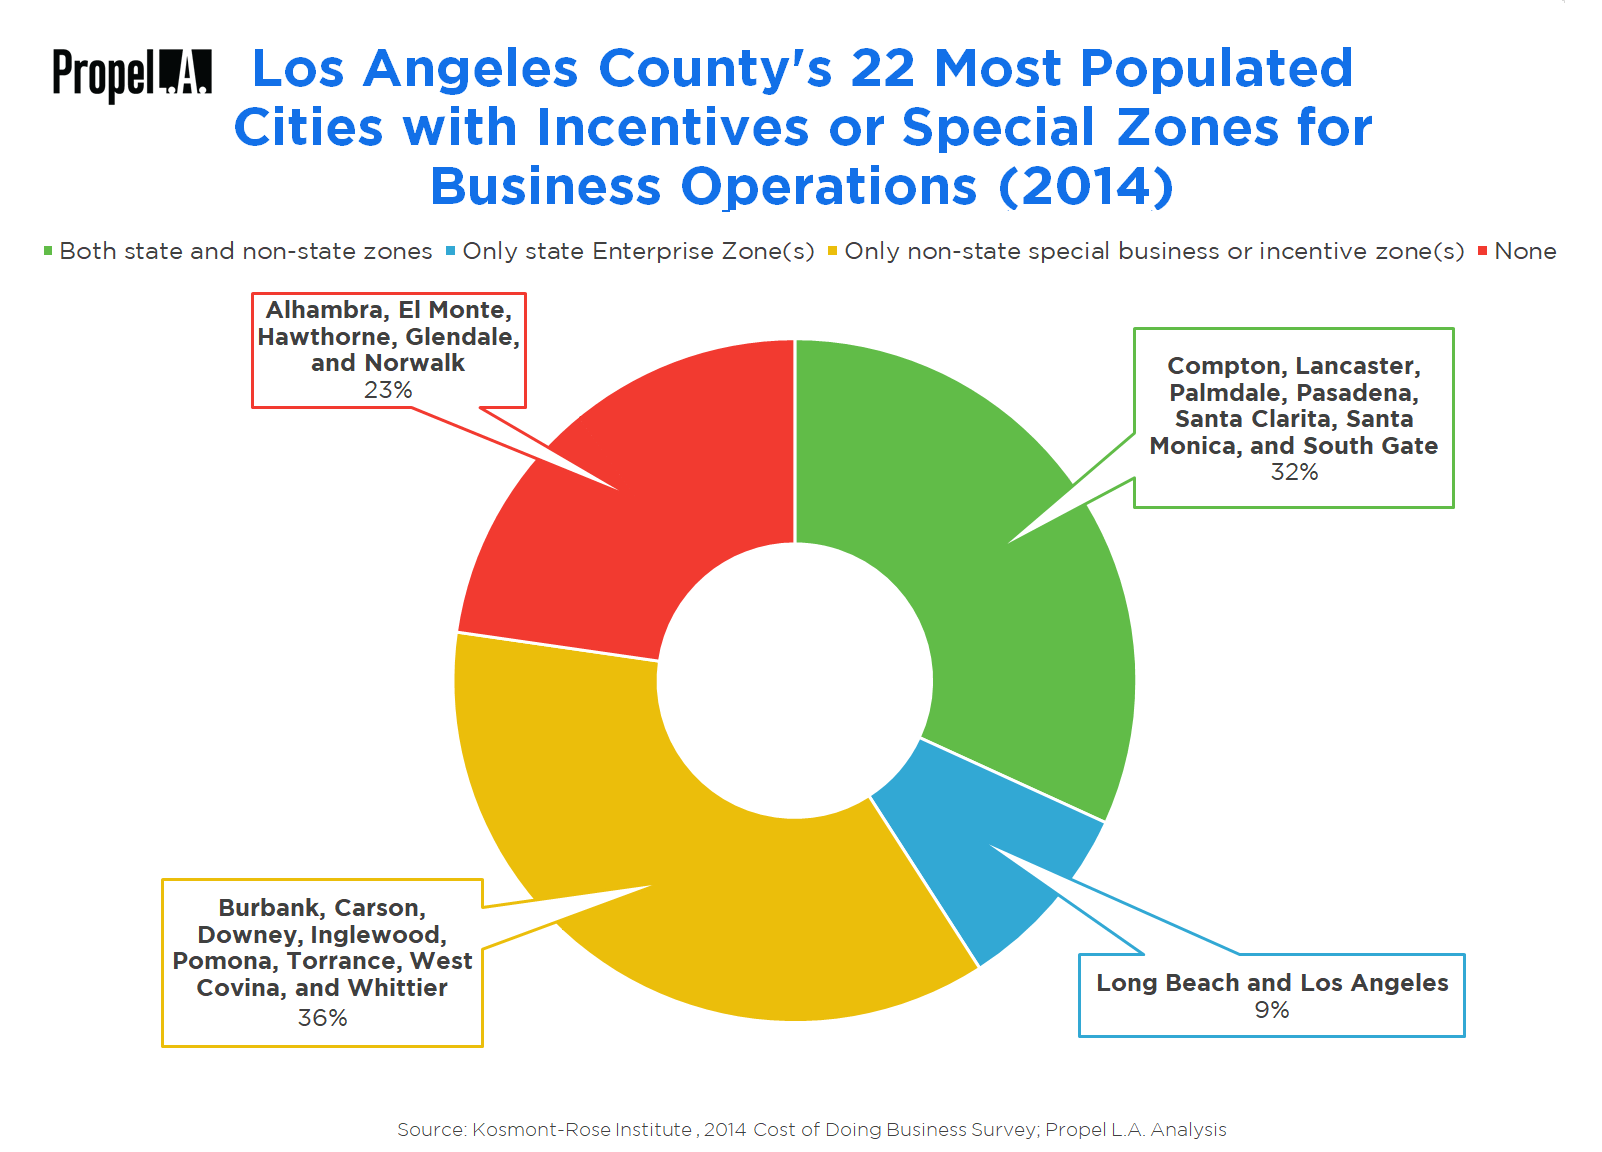 Incentives and Special Zones for Business Operations in Los Angeles County